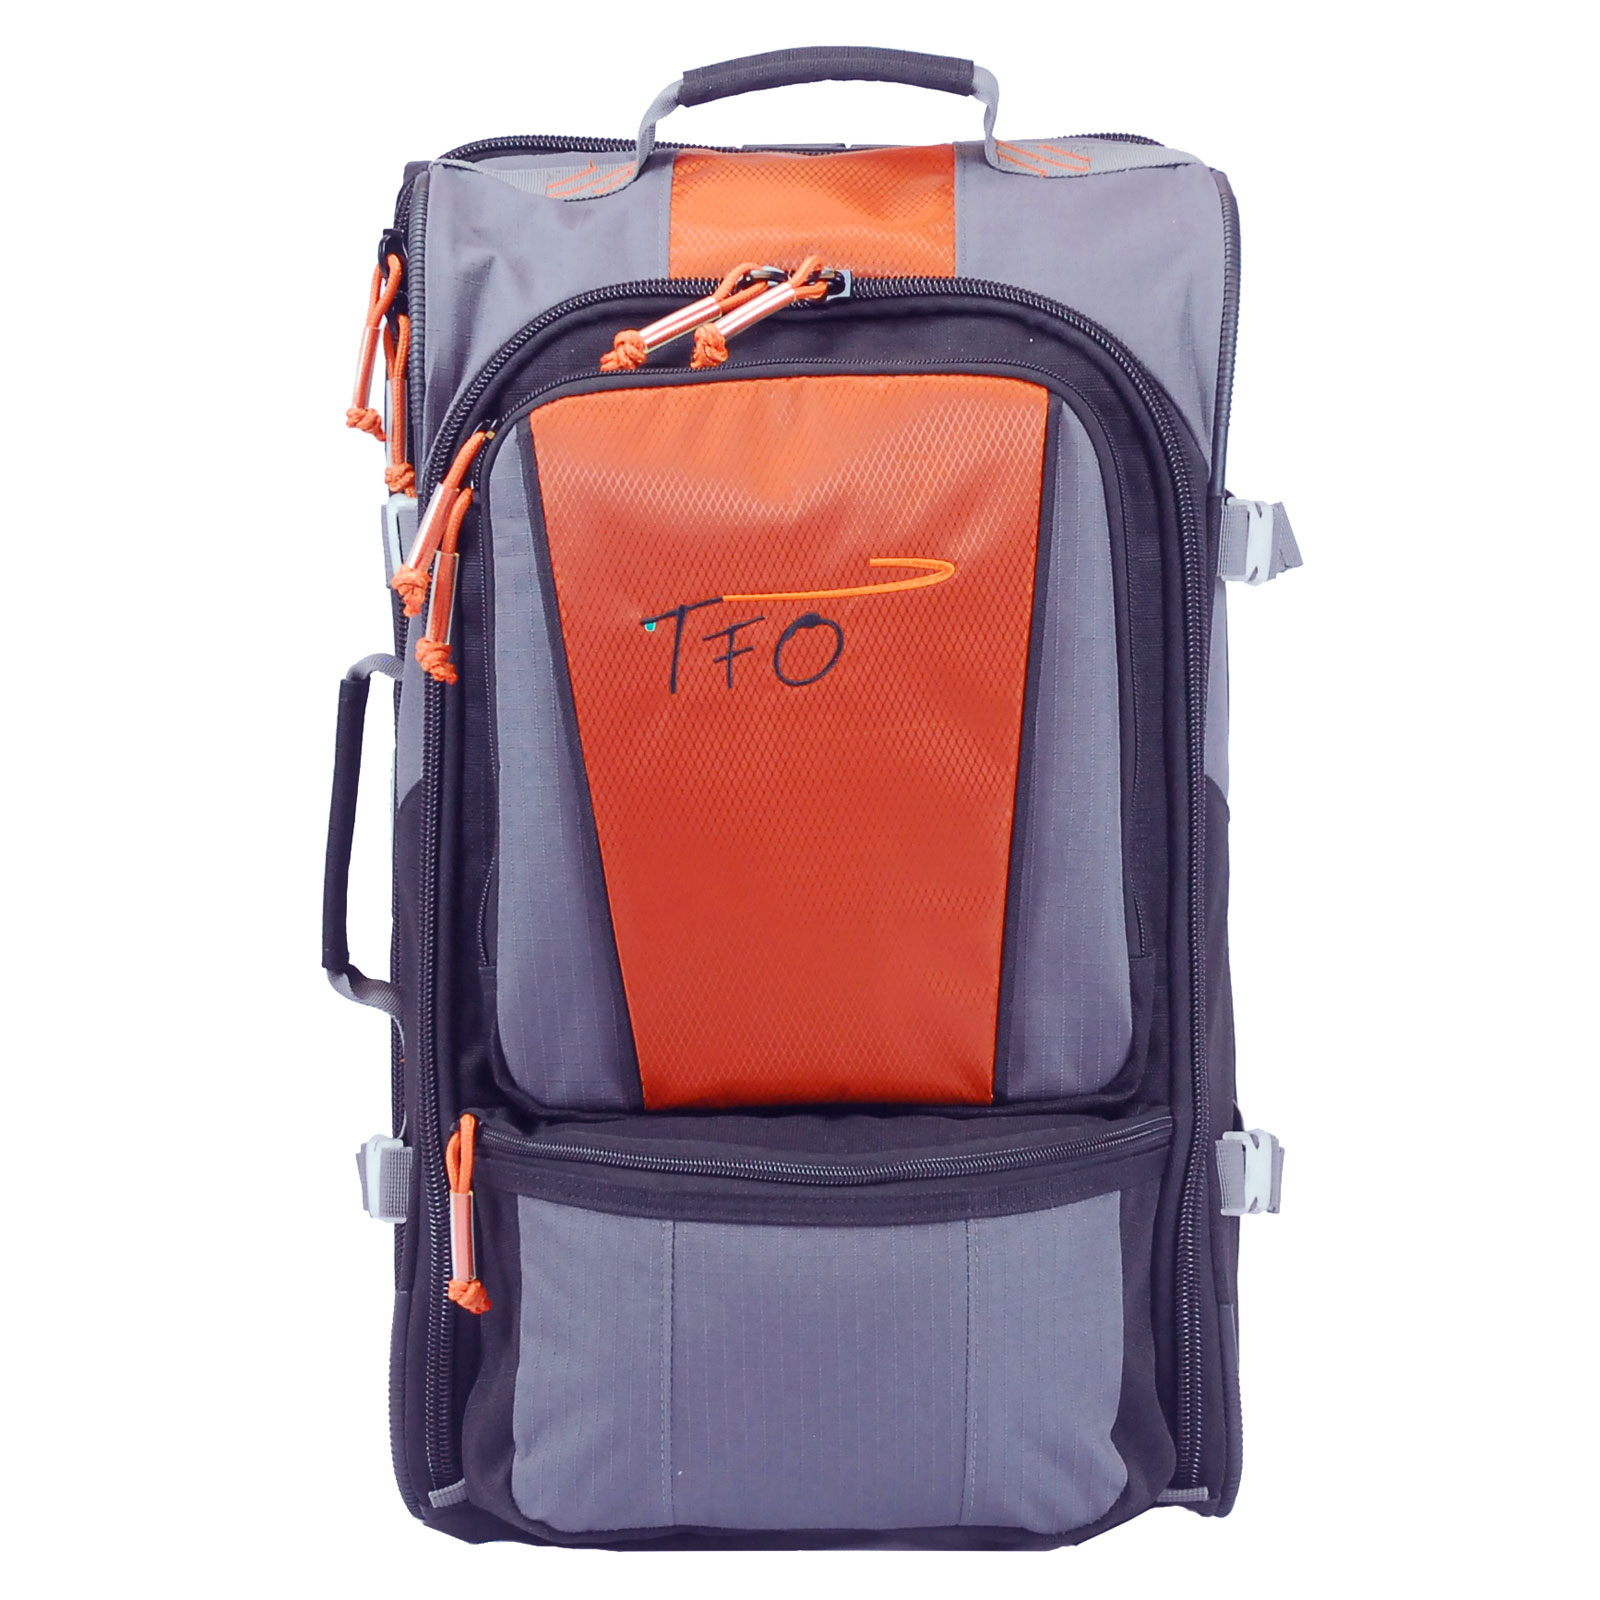 Tfo rolling carry on bag fly fishing durable wheeled for Fishing bags walmart